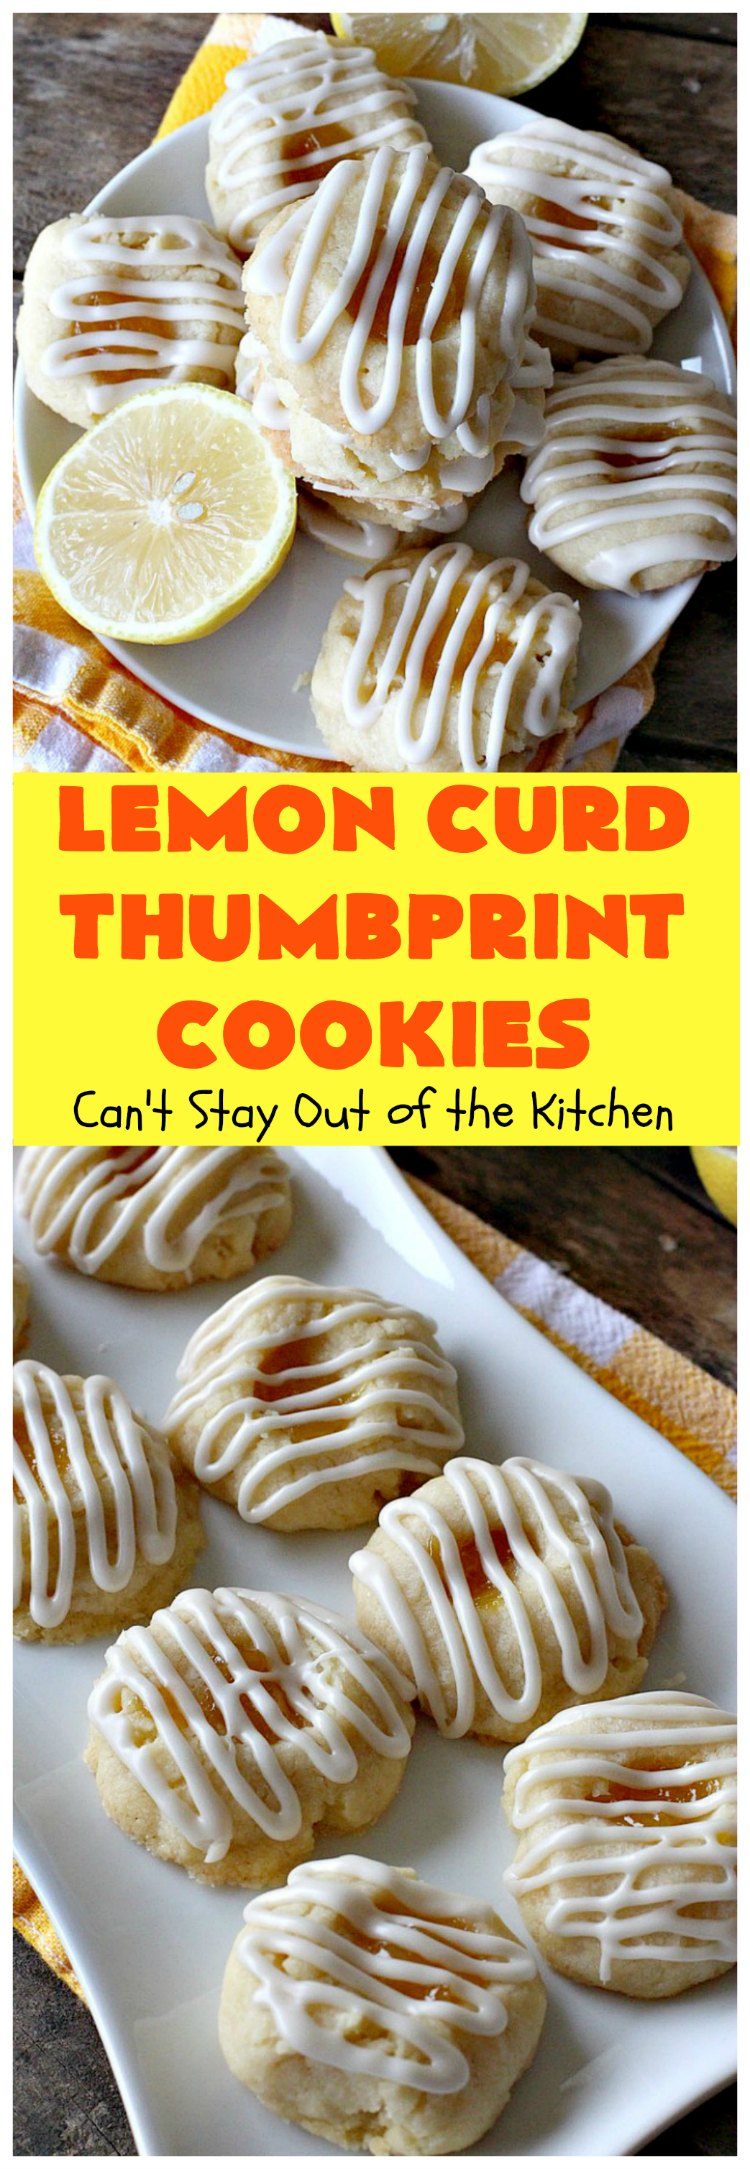 Lemon Curd Thumbprint Cookies   Can't Stay Out of the Kitchen